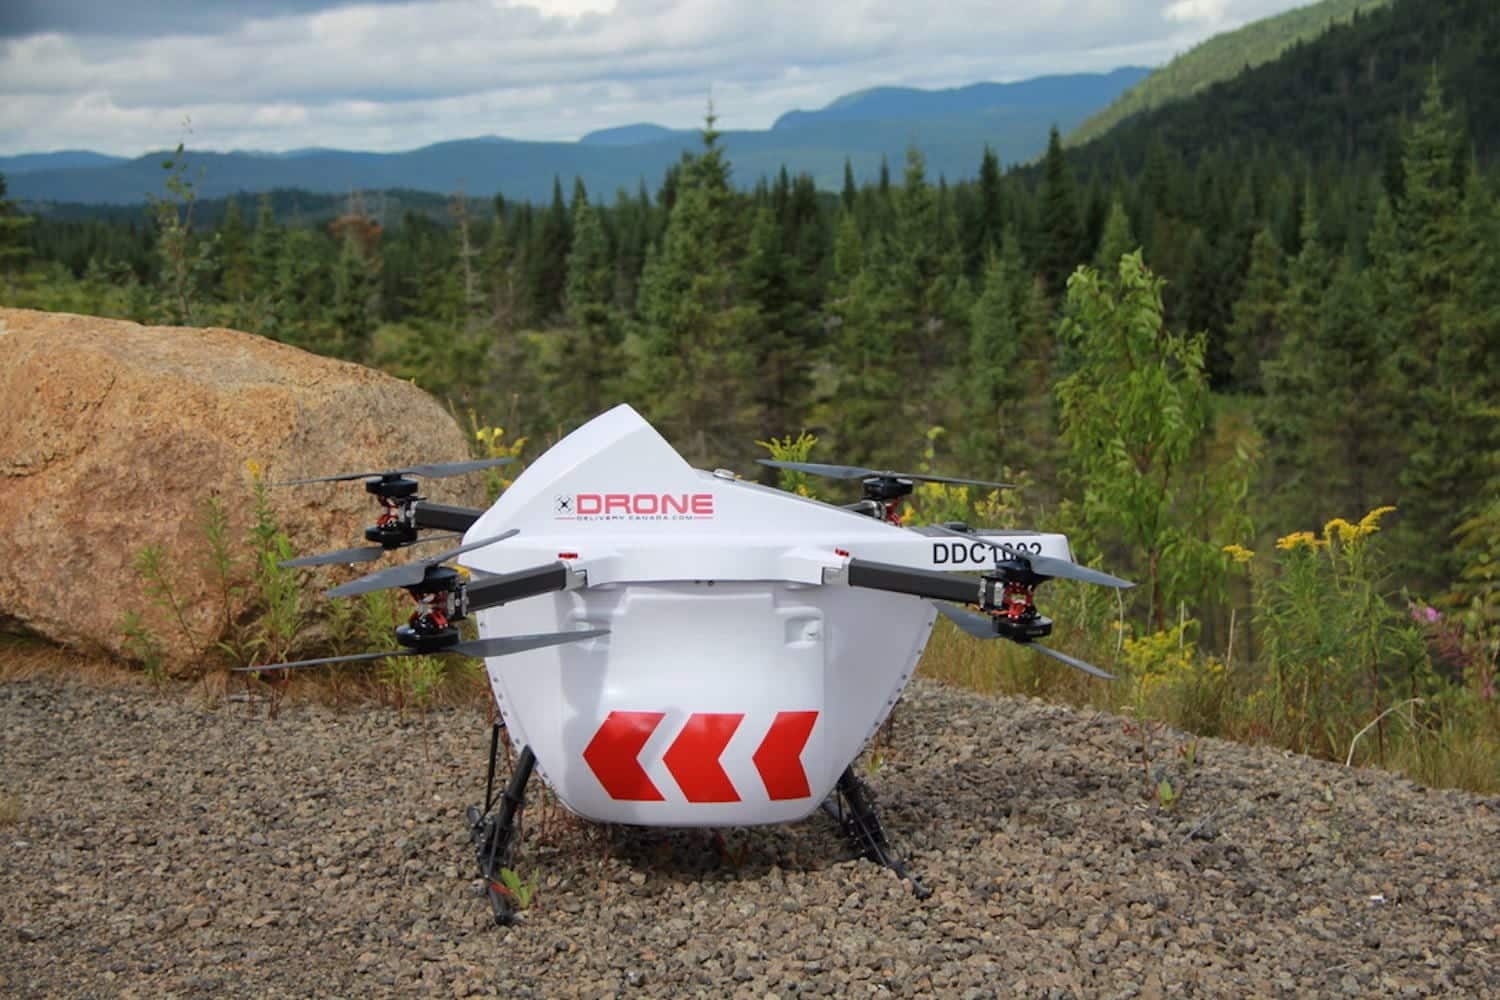 Drone Delivery Canada Corp. is pleased to announce the appointment of Mr. Manish Arora as Chief Financial Officer (CFO) of the Company, effective September 8th, 2020.